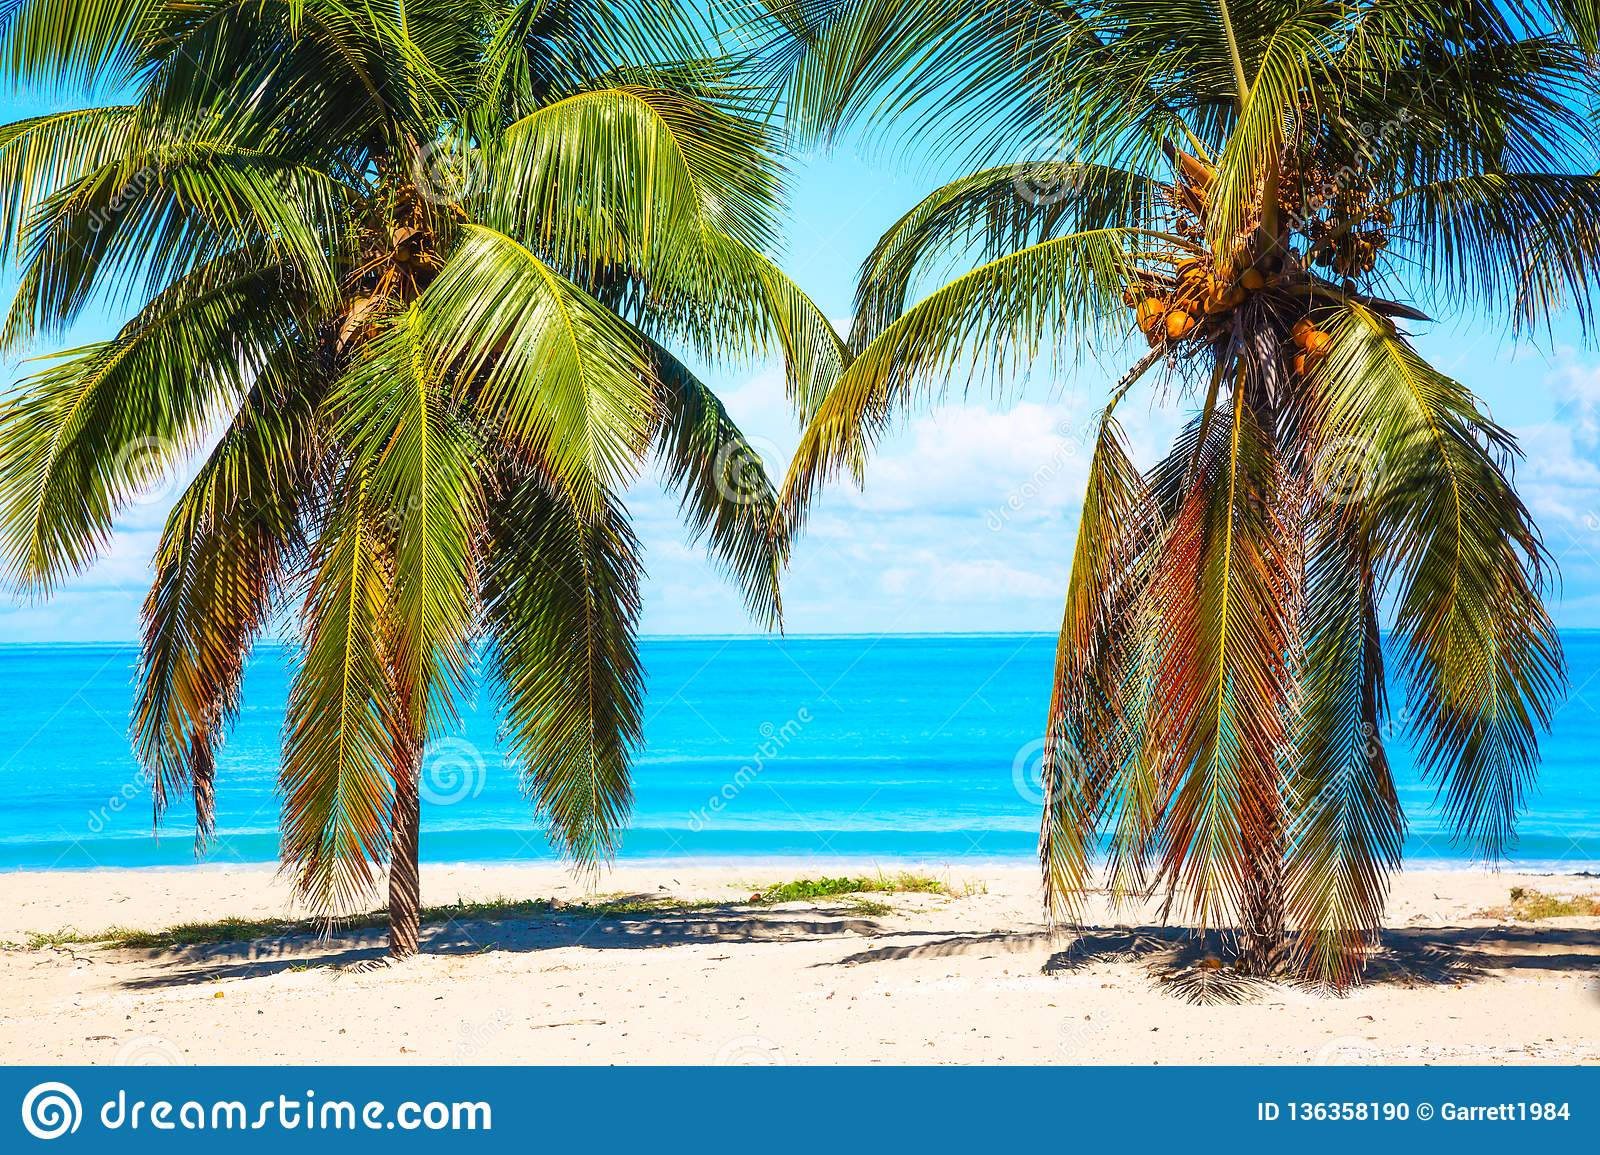 Vacation Holidays Background Wallpaper Palm Trees And Tropical